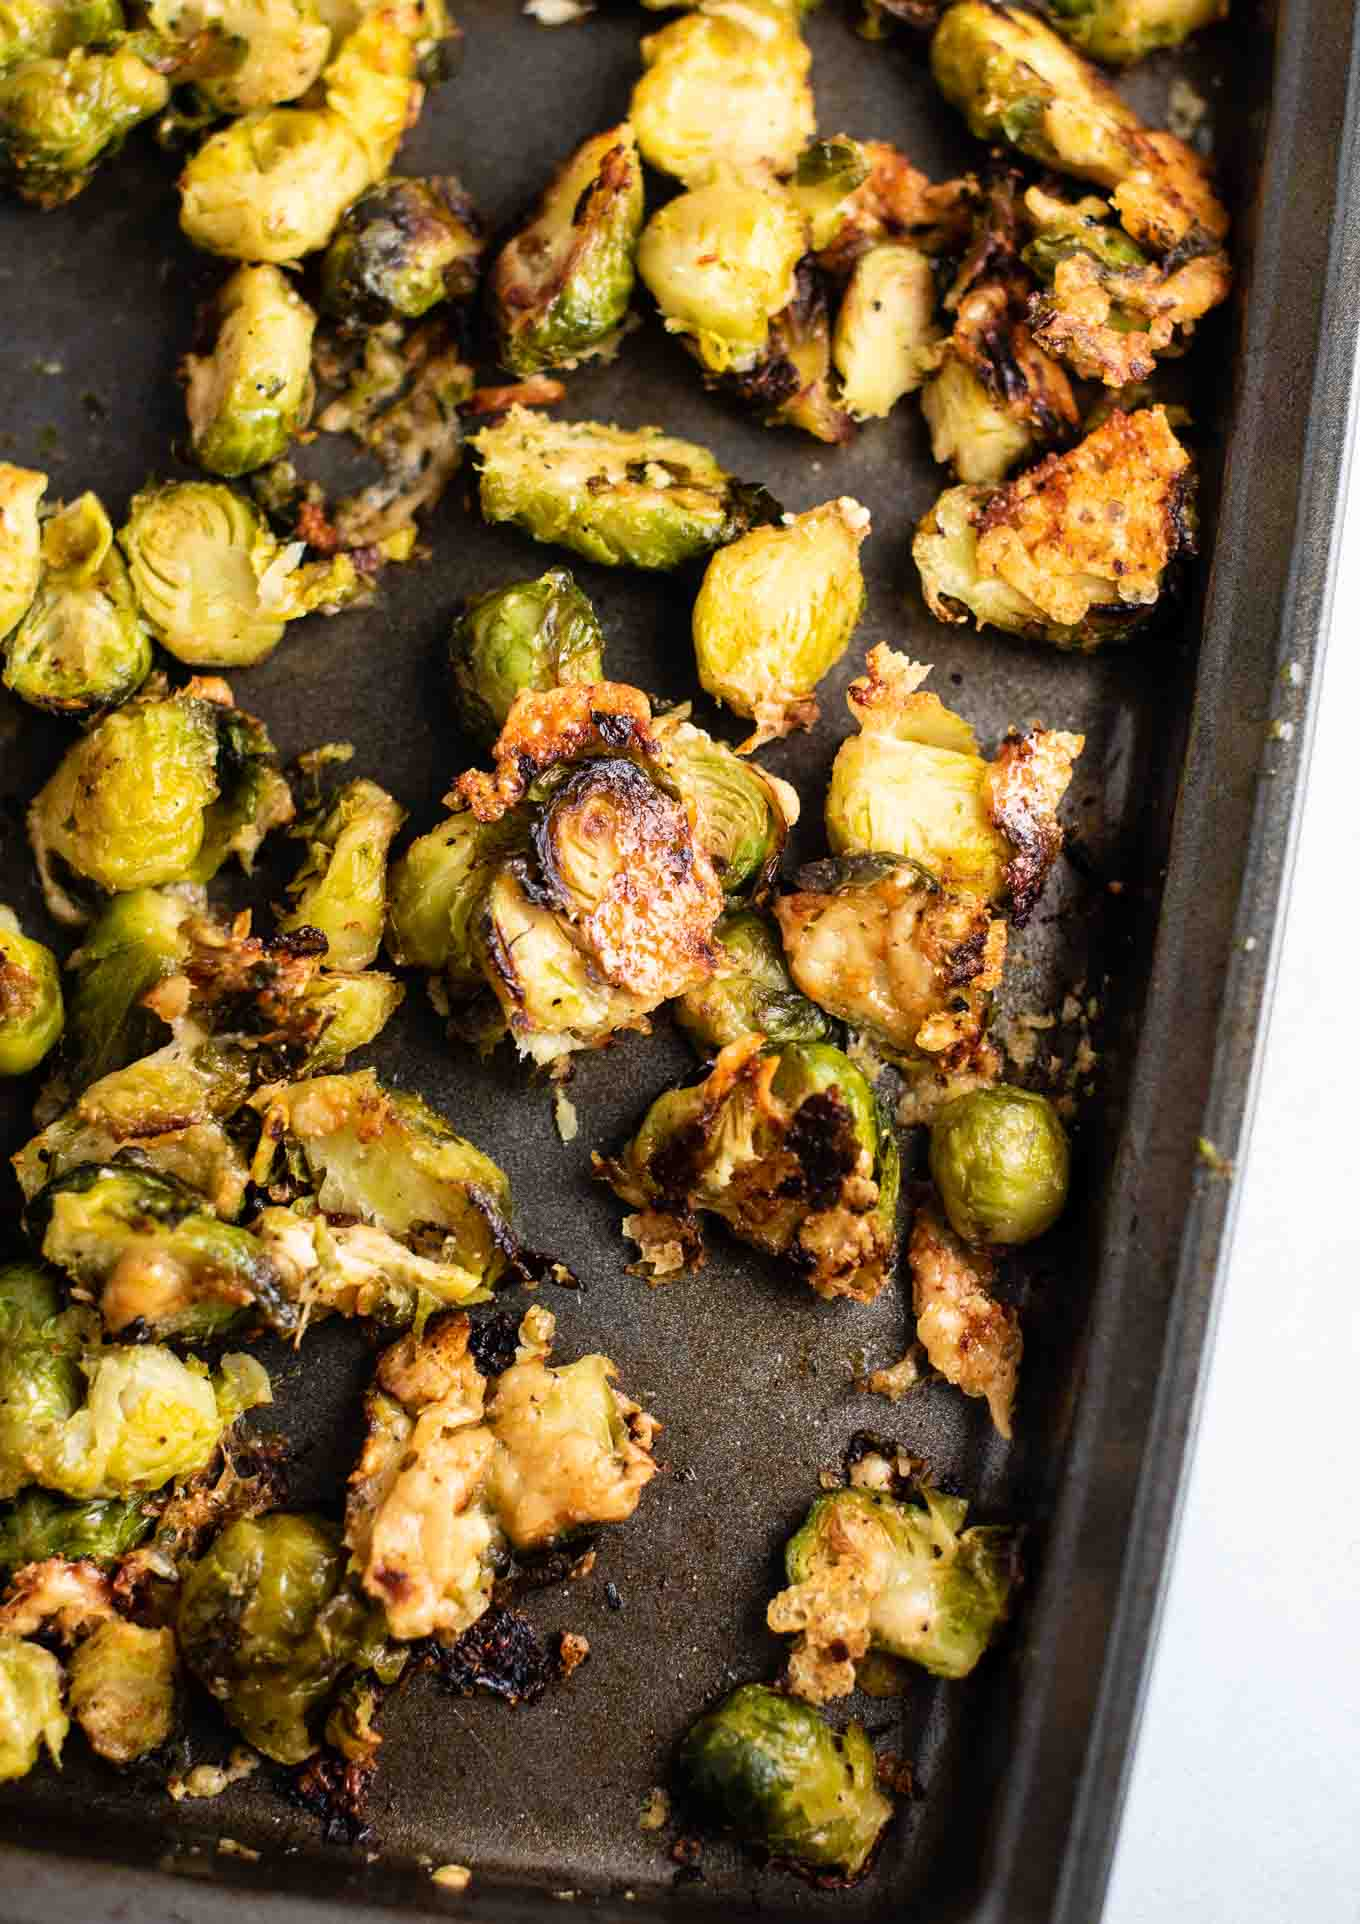 roasted frozen brussel sprouts on a black baking sheet from an overhead view